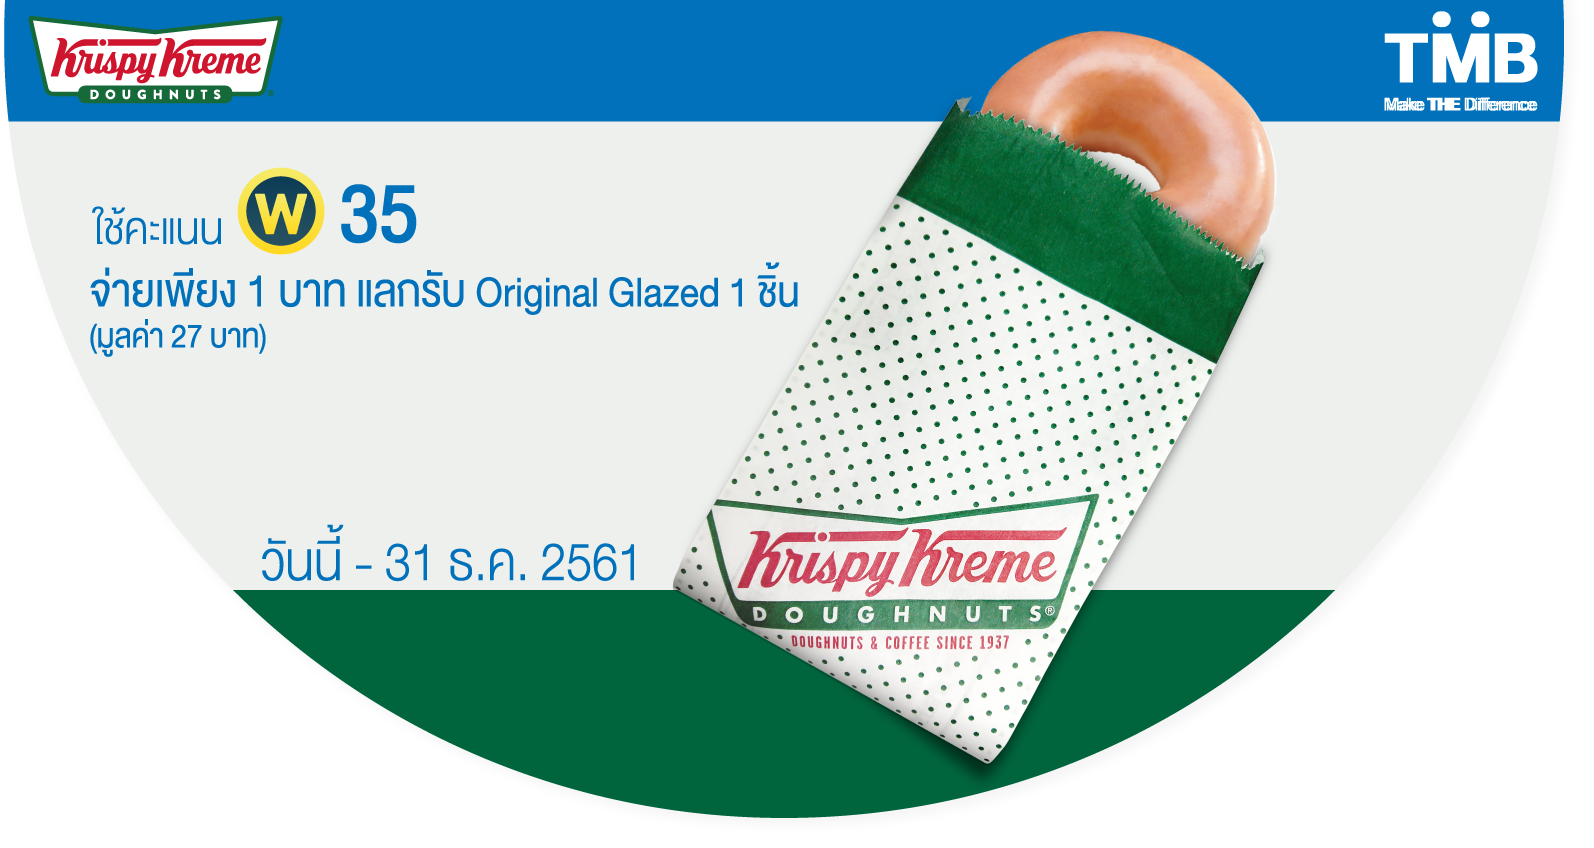 krispykreme_website_08.30.2018_tmb